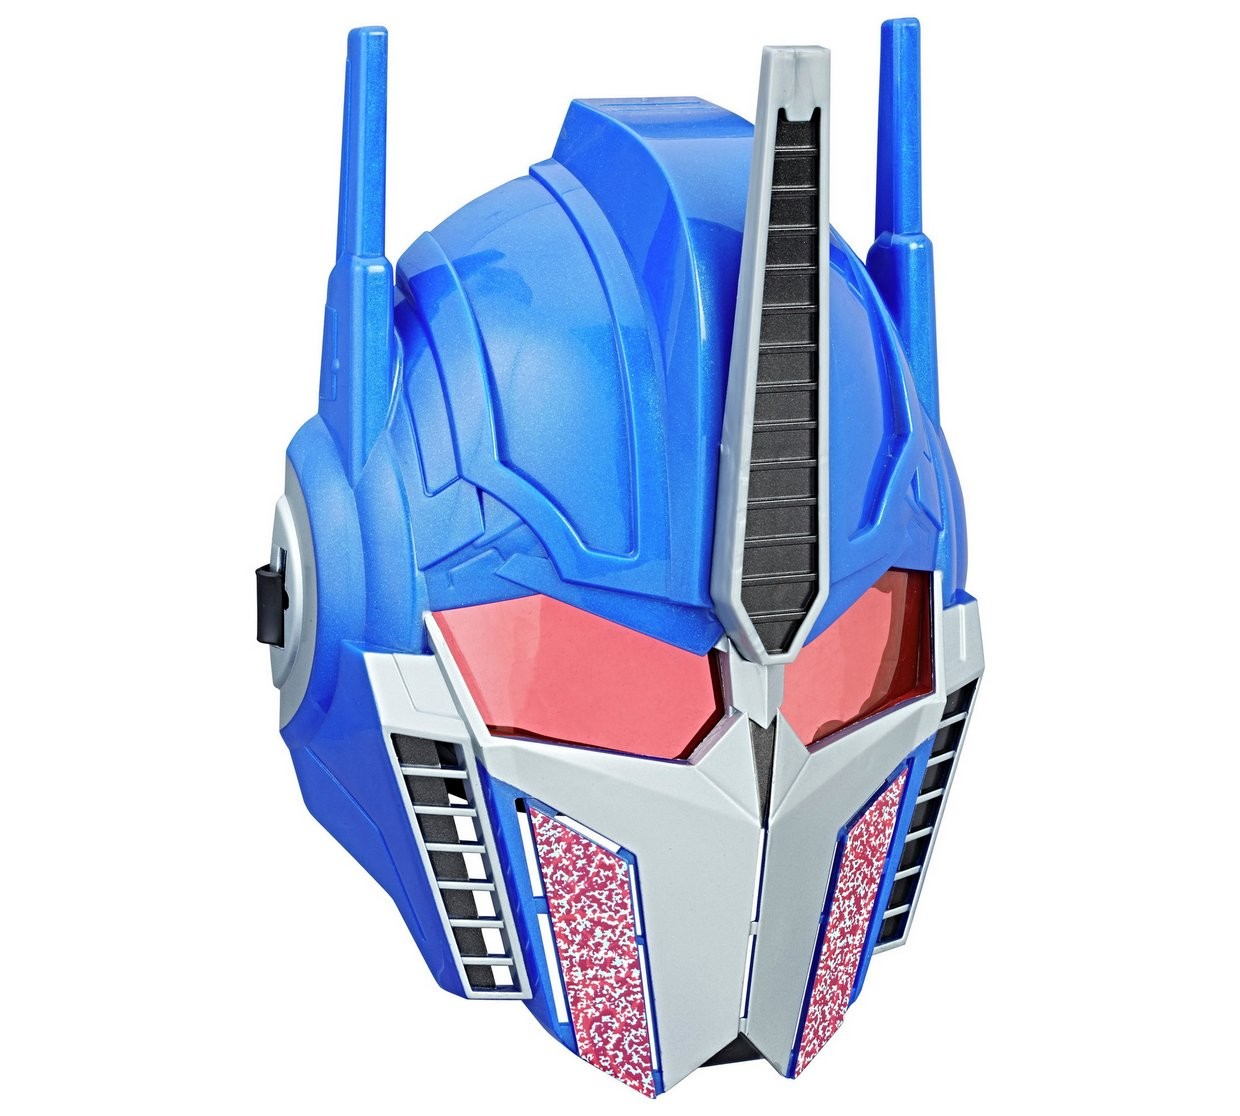 Transformers: The Last Knight Reveal The Shield Masks Revealed